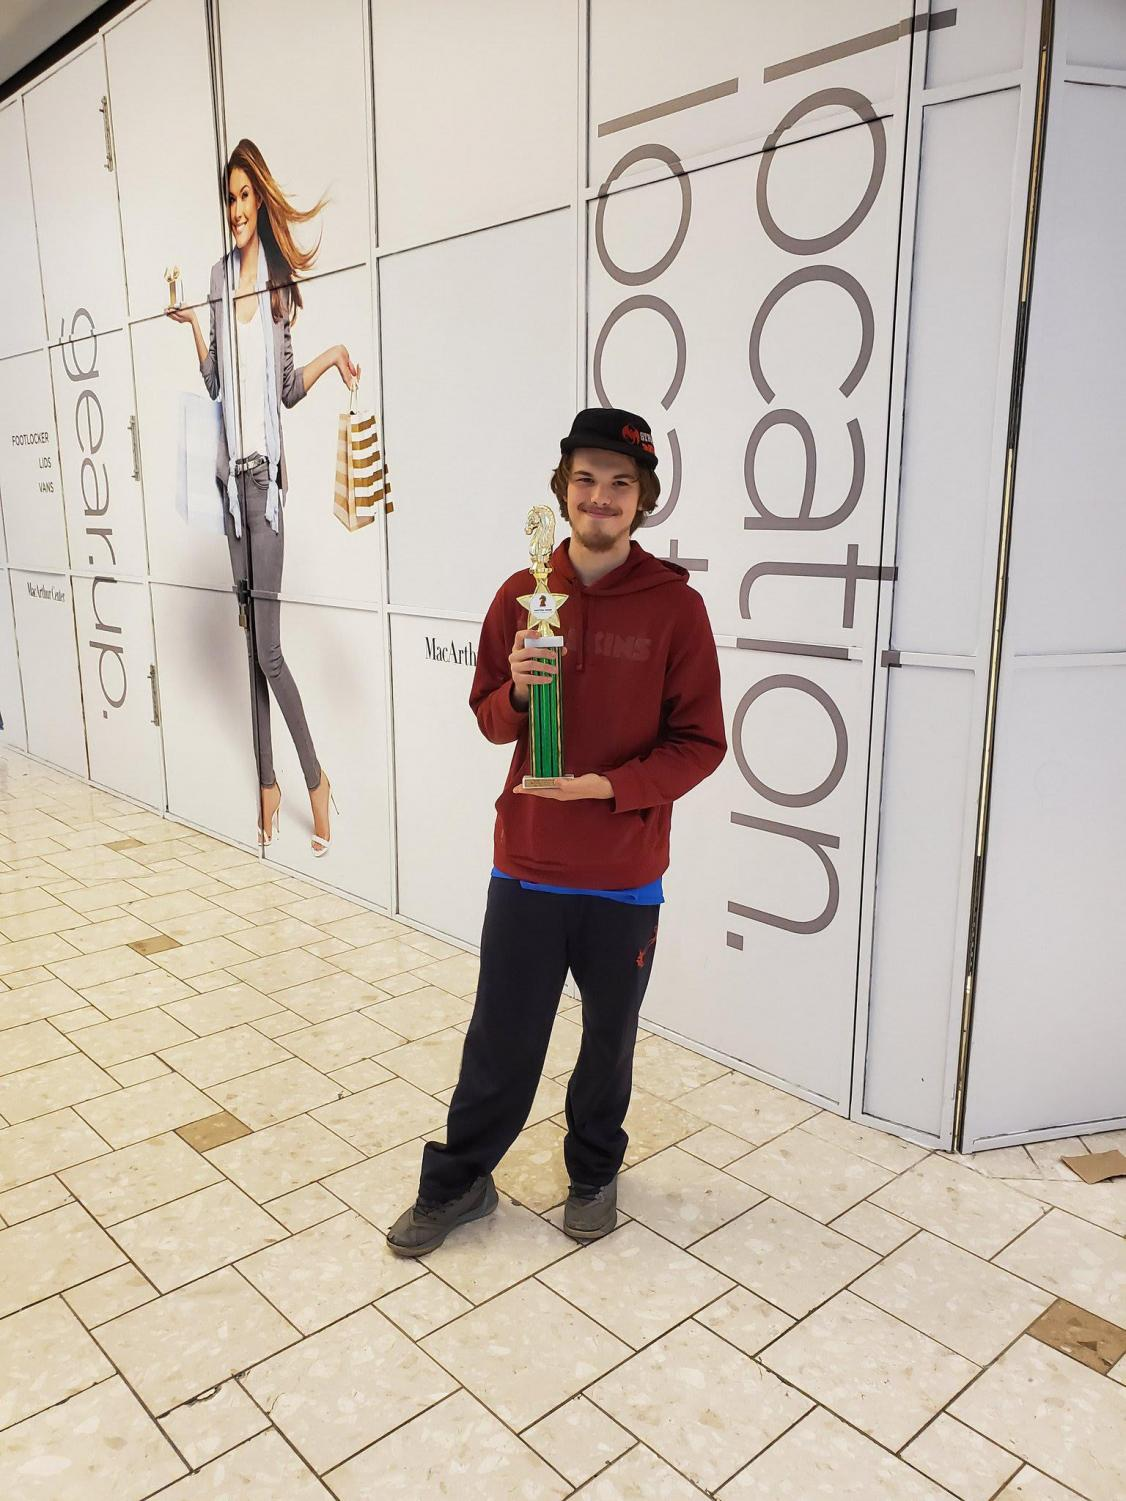 Preston Lewis, Chess Club member, with his trophy from his win at the tournament at MacArthur Mall last year.